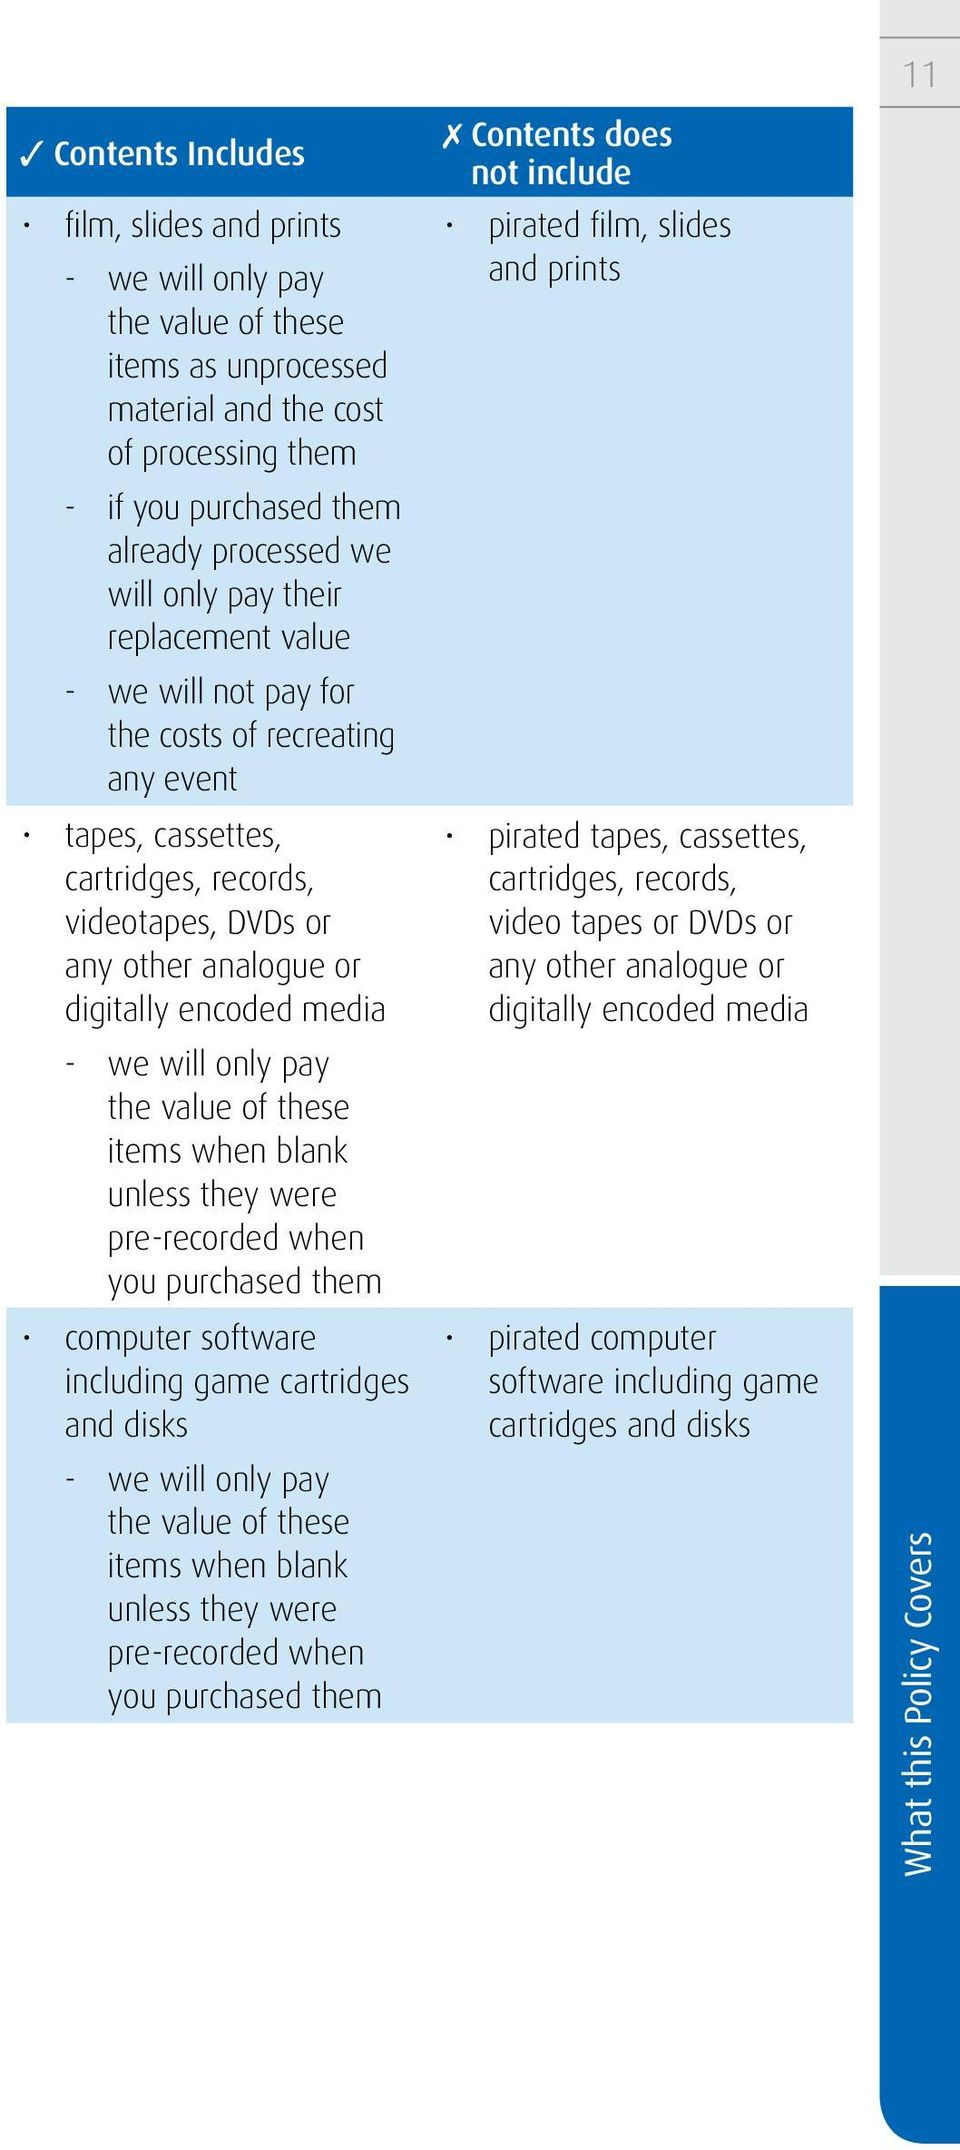 only pay the value of these items when blank unless they were pre-recorded when you purchased them computer software including game cartridges and disks - we will only pay the value of these items